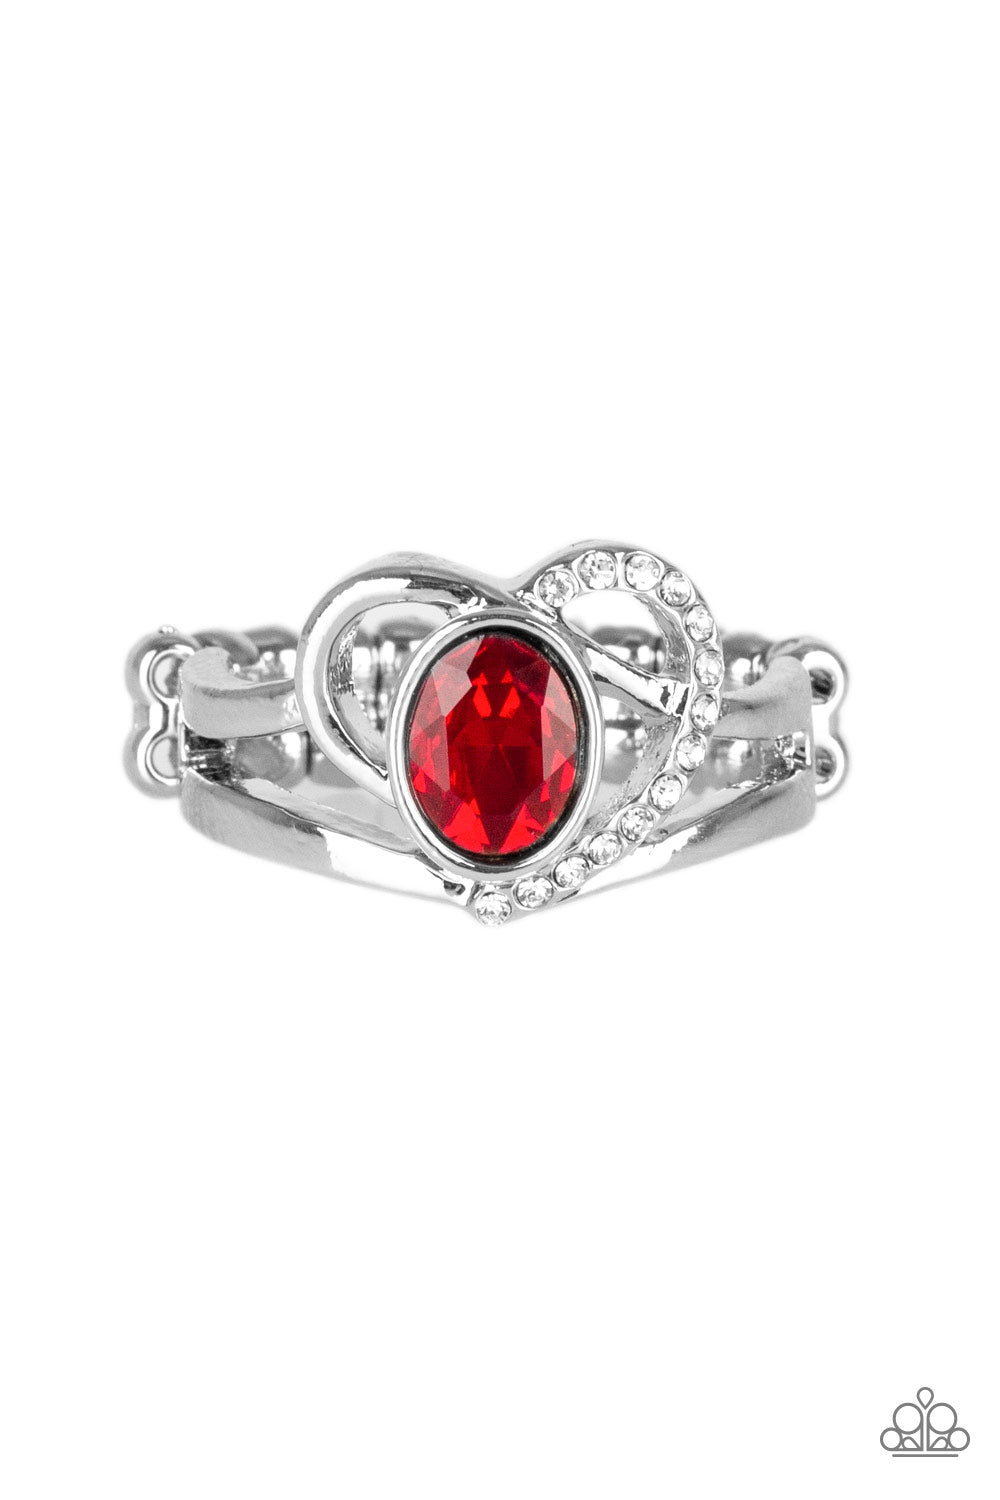 Paparazzi Accessories - No HEART-Strings Attached - Red Ring - JMJ Jewelry Collection